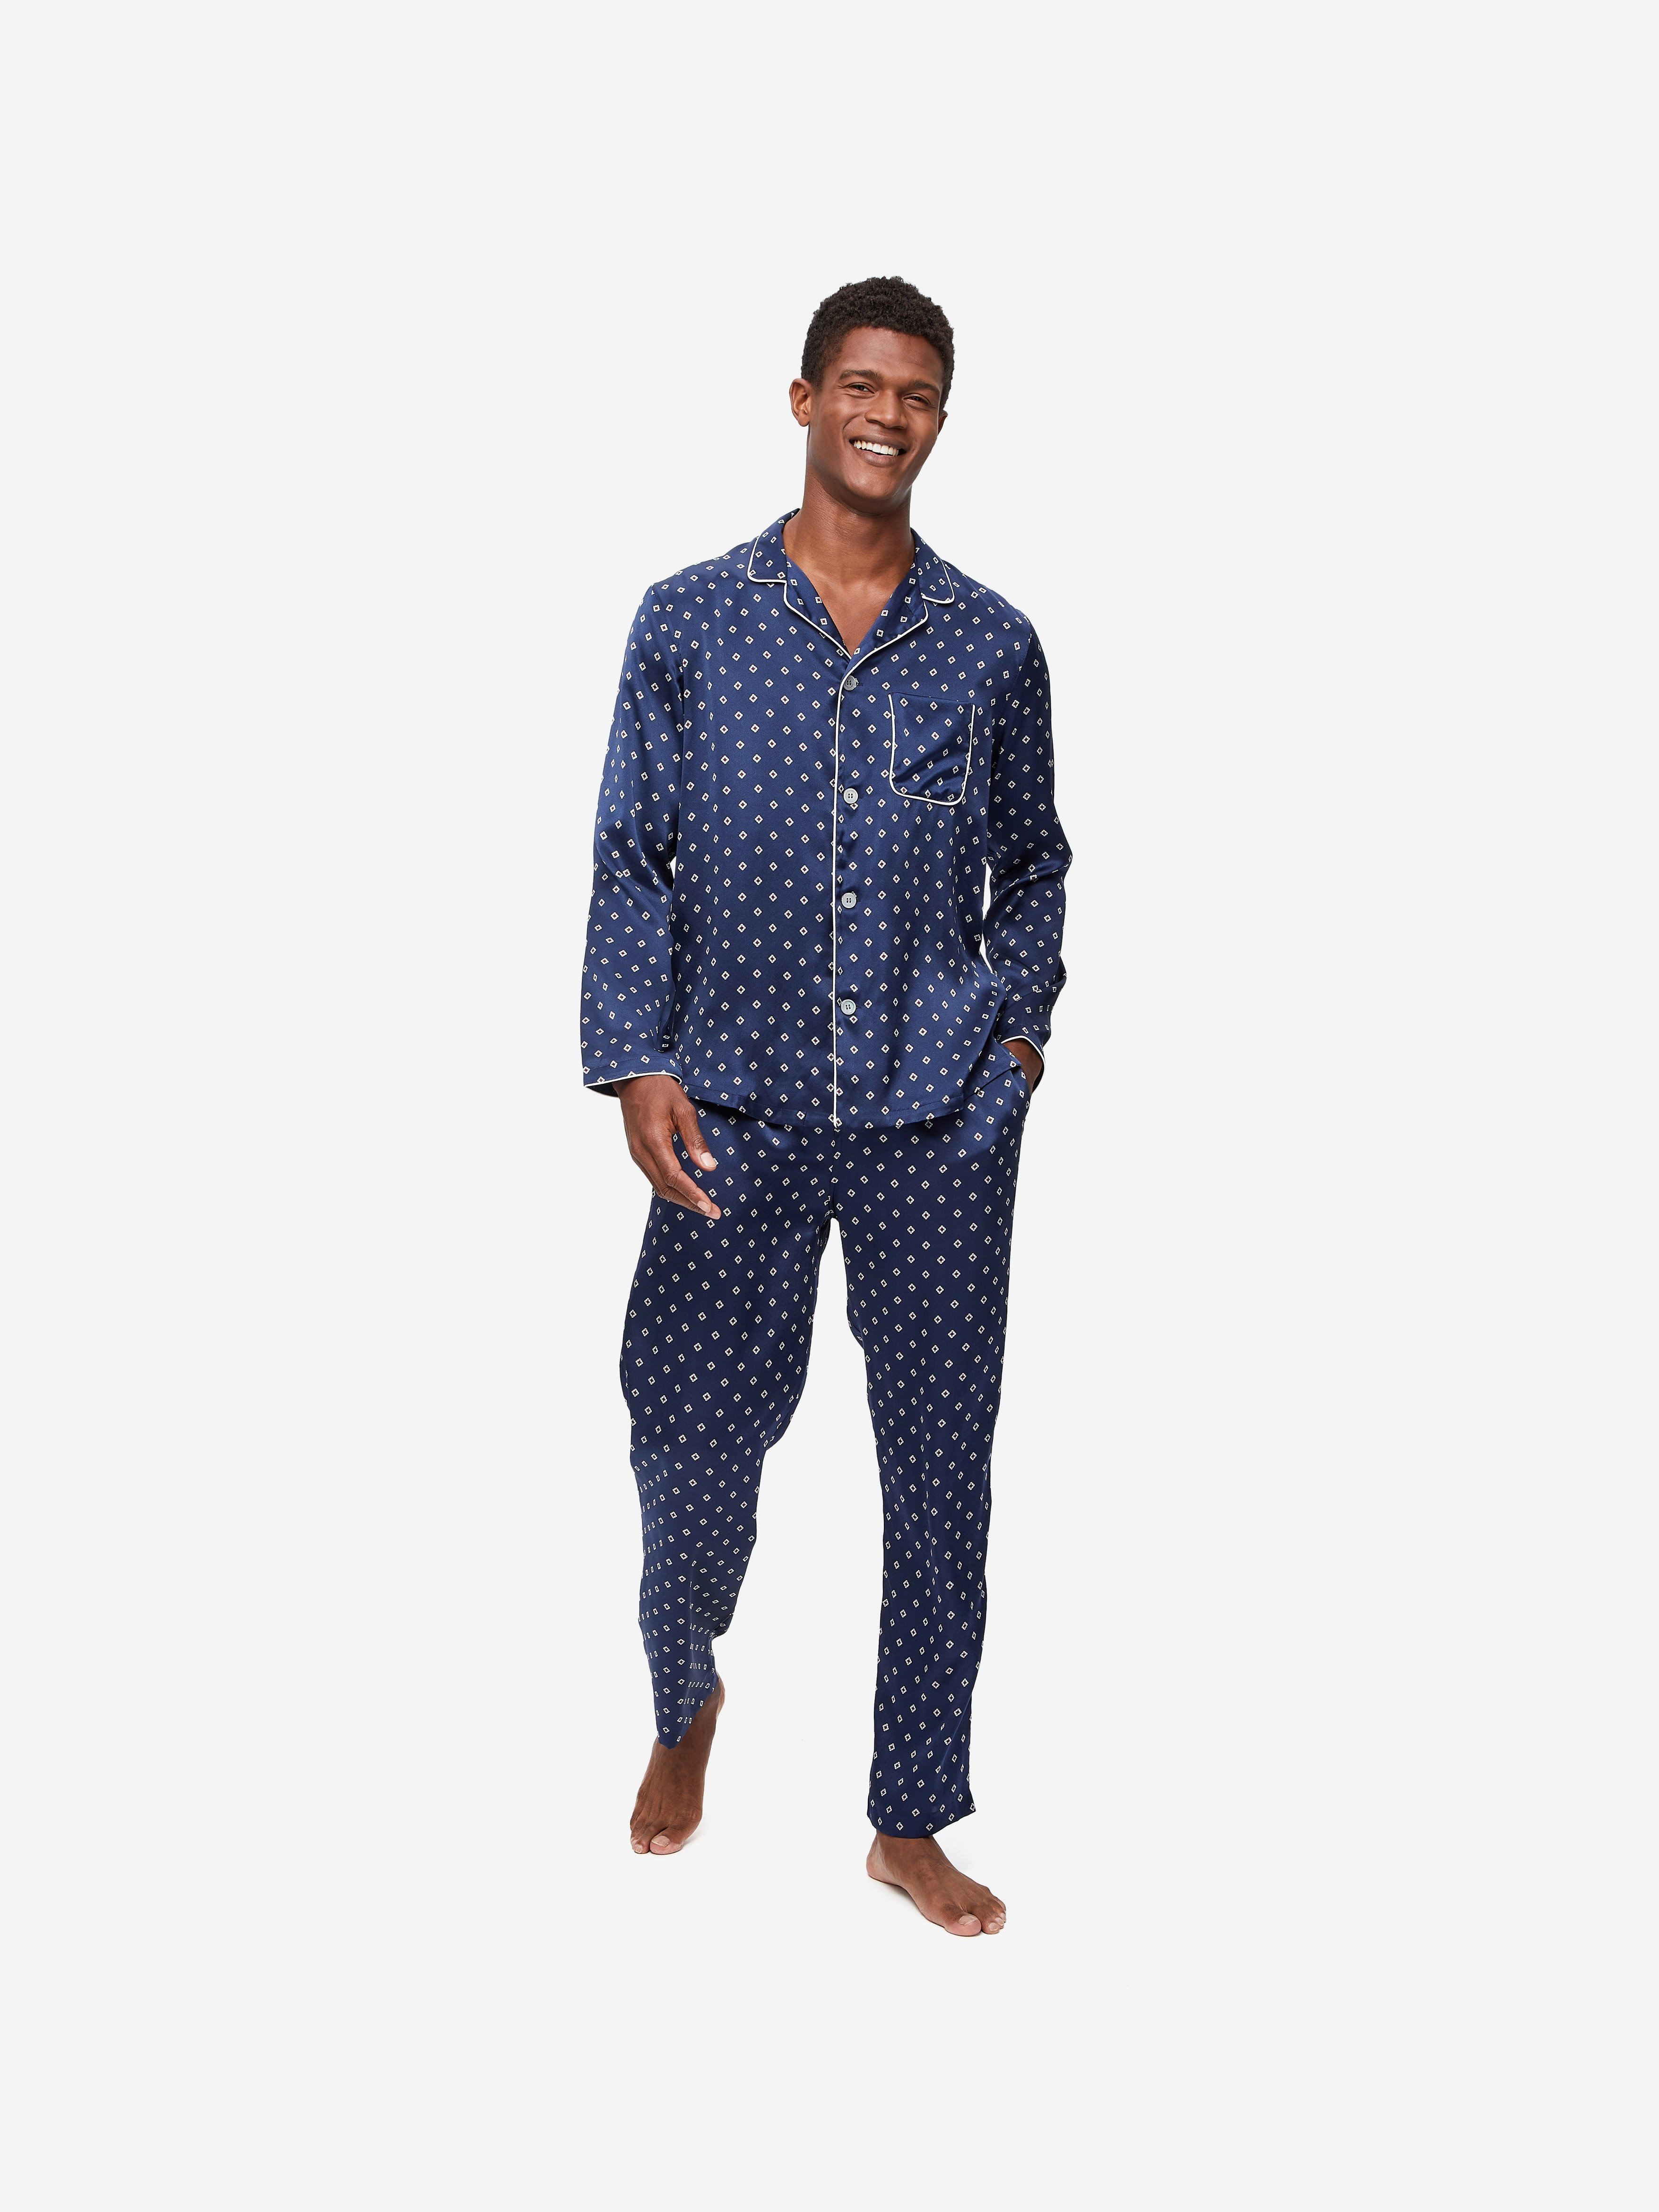 Men's Modern Fit Piped Pyjamas Brindisi 58 Pure Silk Satin Navy